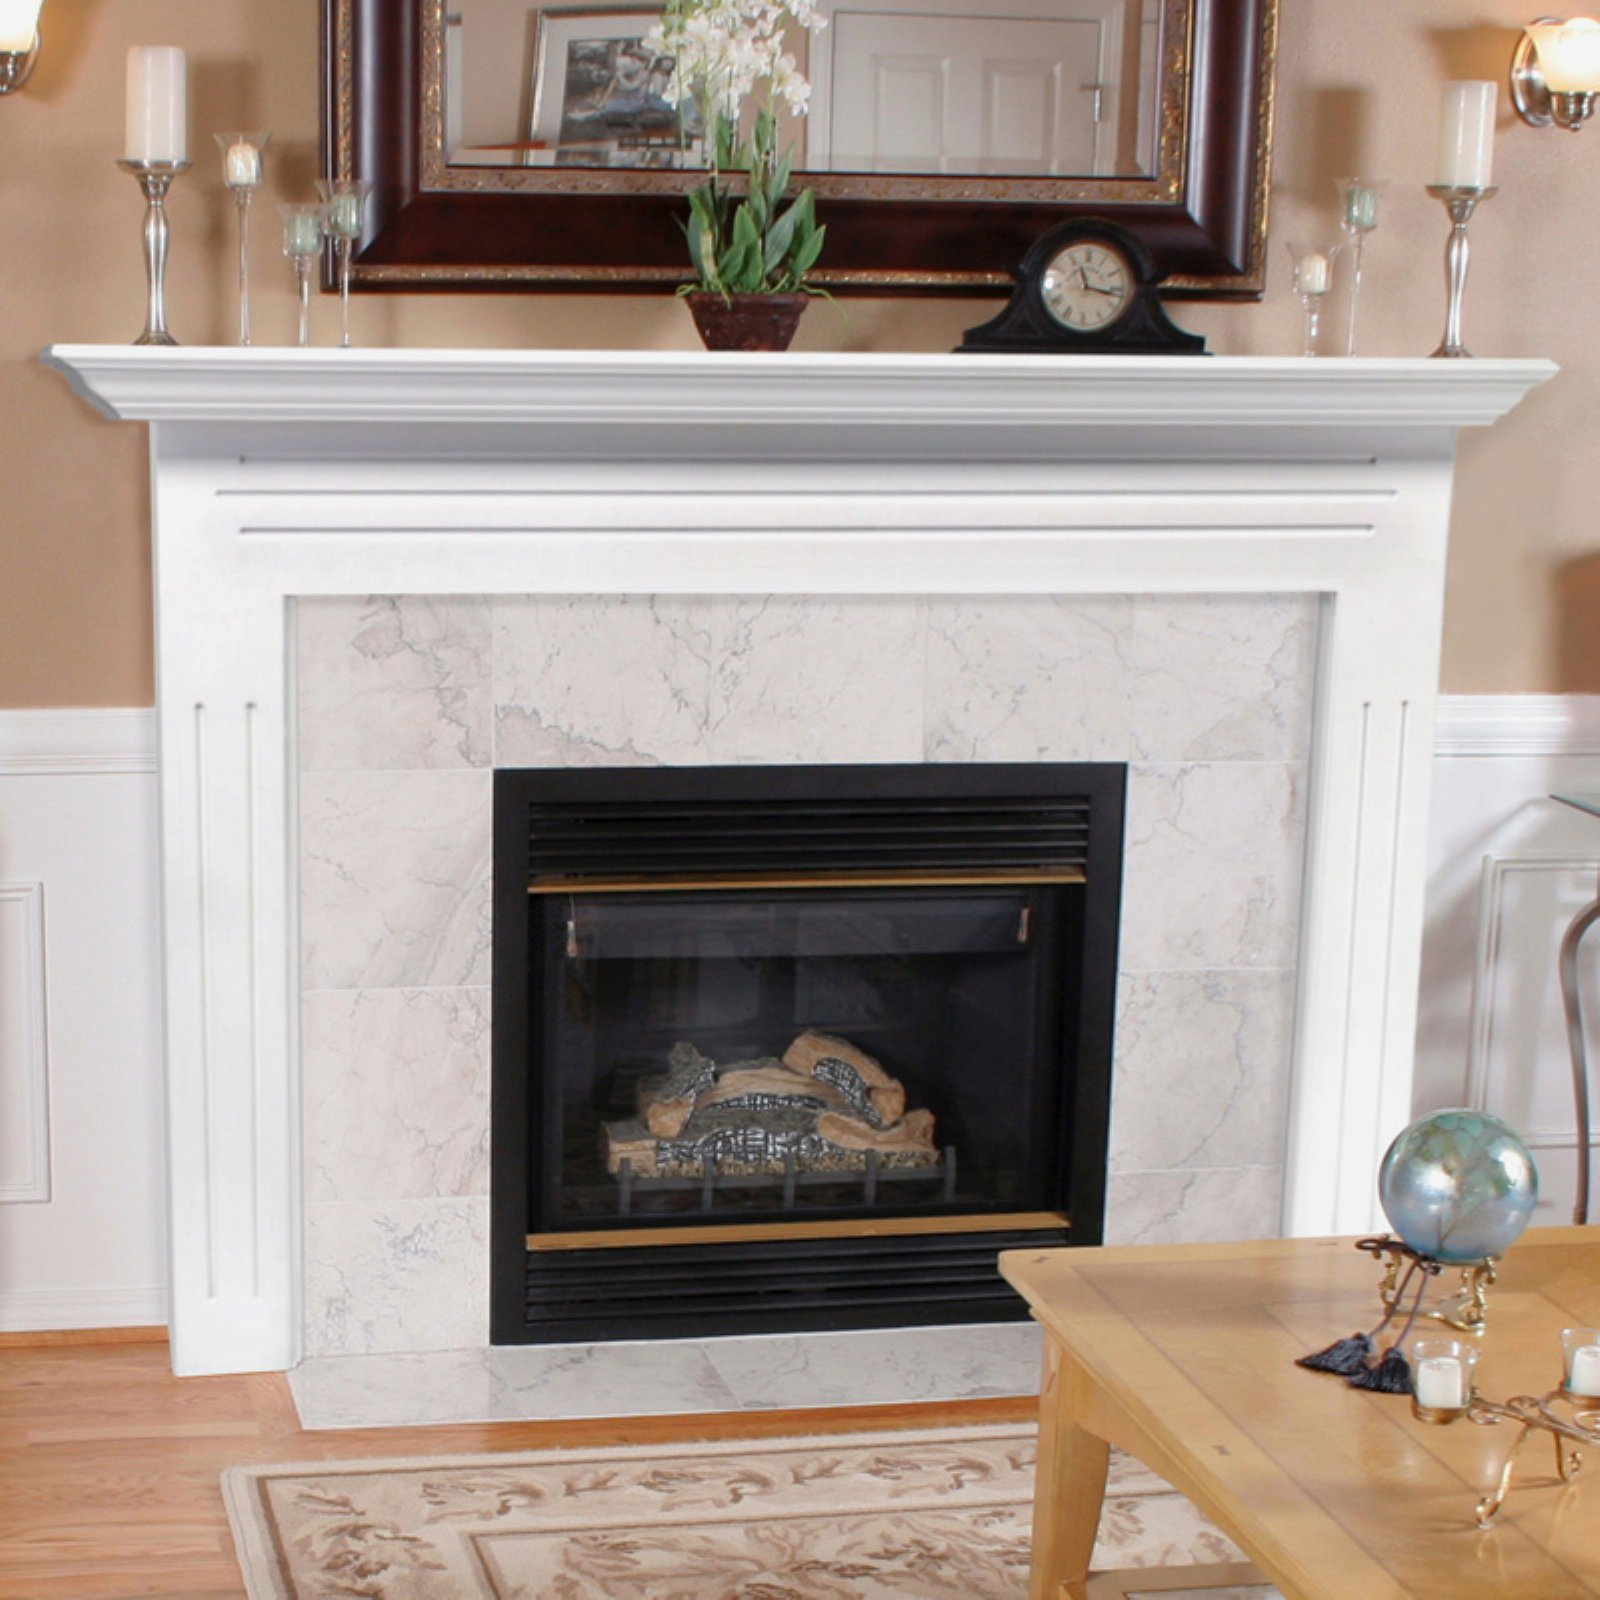 Shop for Fireplace Surrounds and Mantels in Fireplace Accessories. Buy products such as Pearl Mantels Newport Wood Fireplace Mantel Surround at Walmart and save.